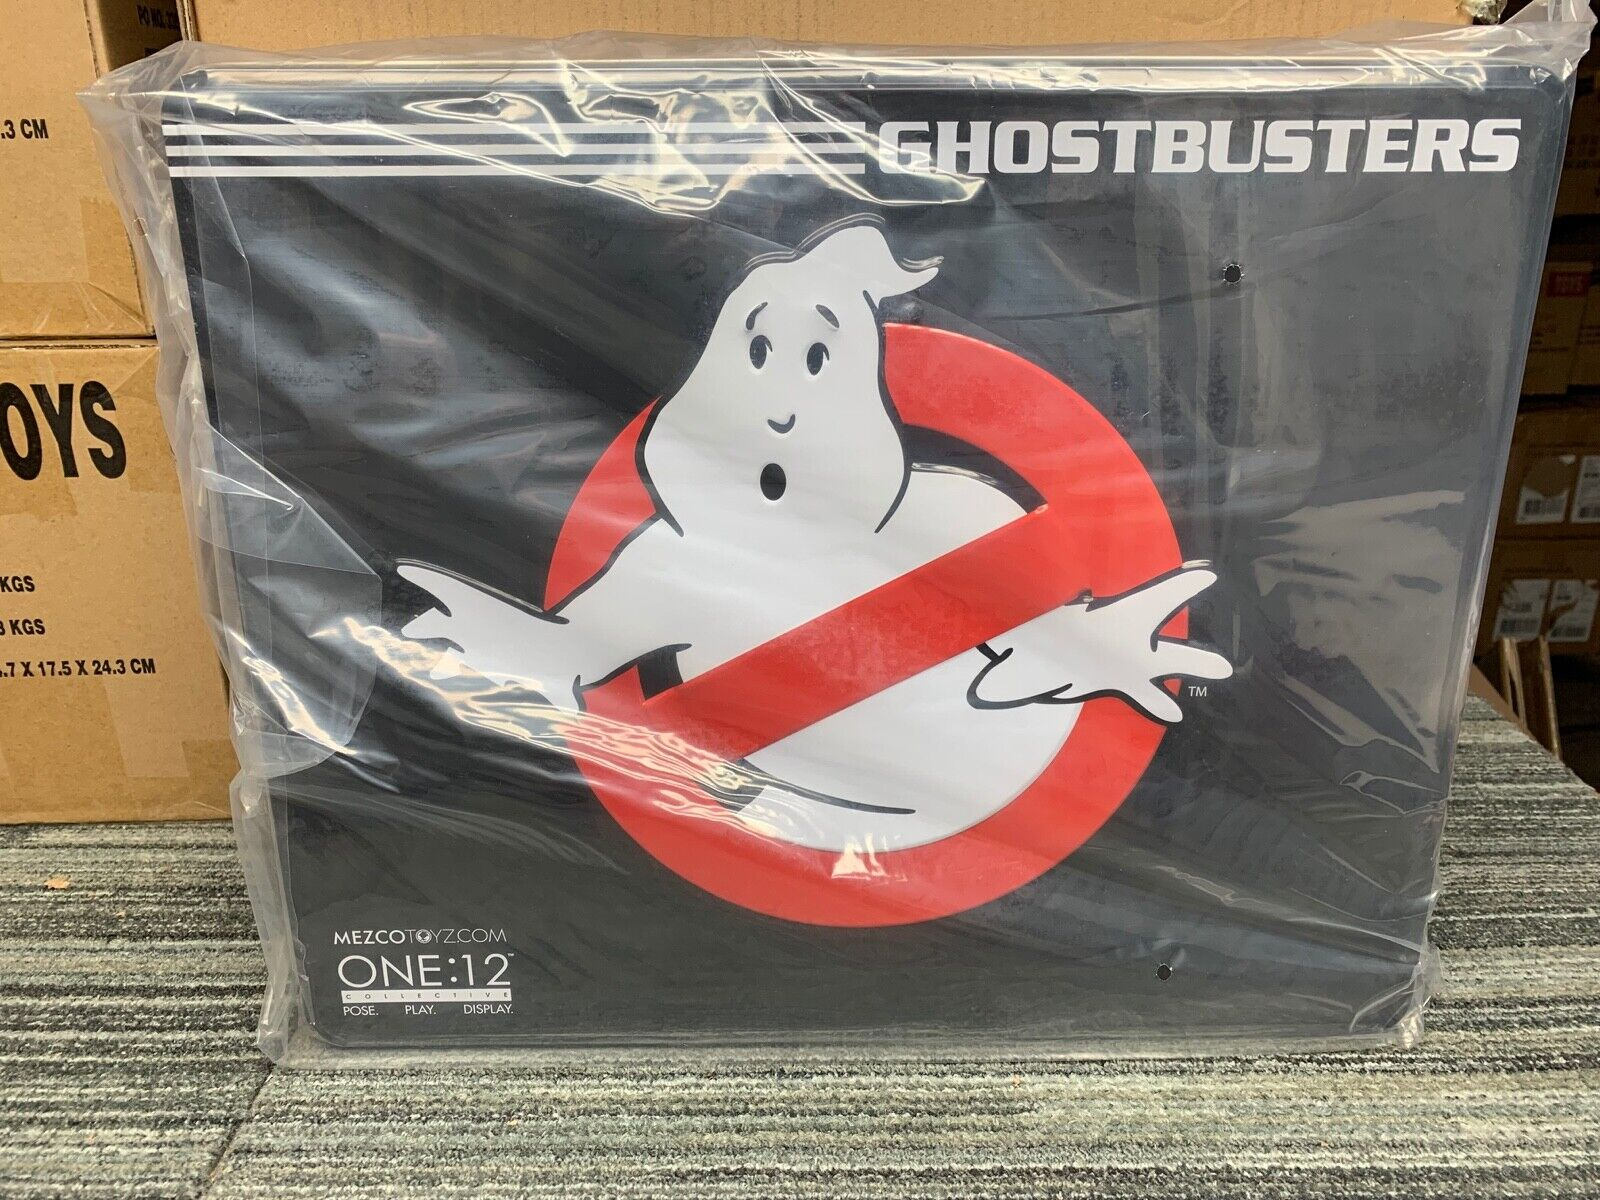 Mezco ONE ONE ONE 12 GHOSTautobusTERS SET e5f5cd